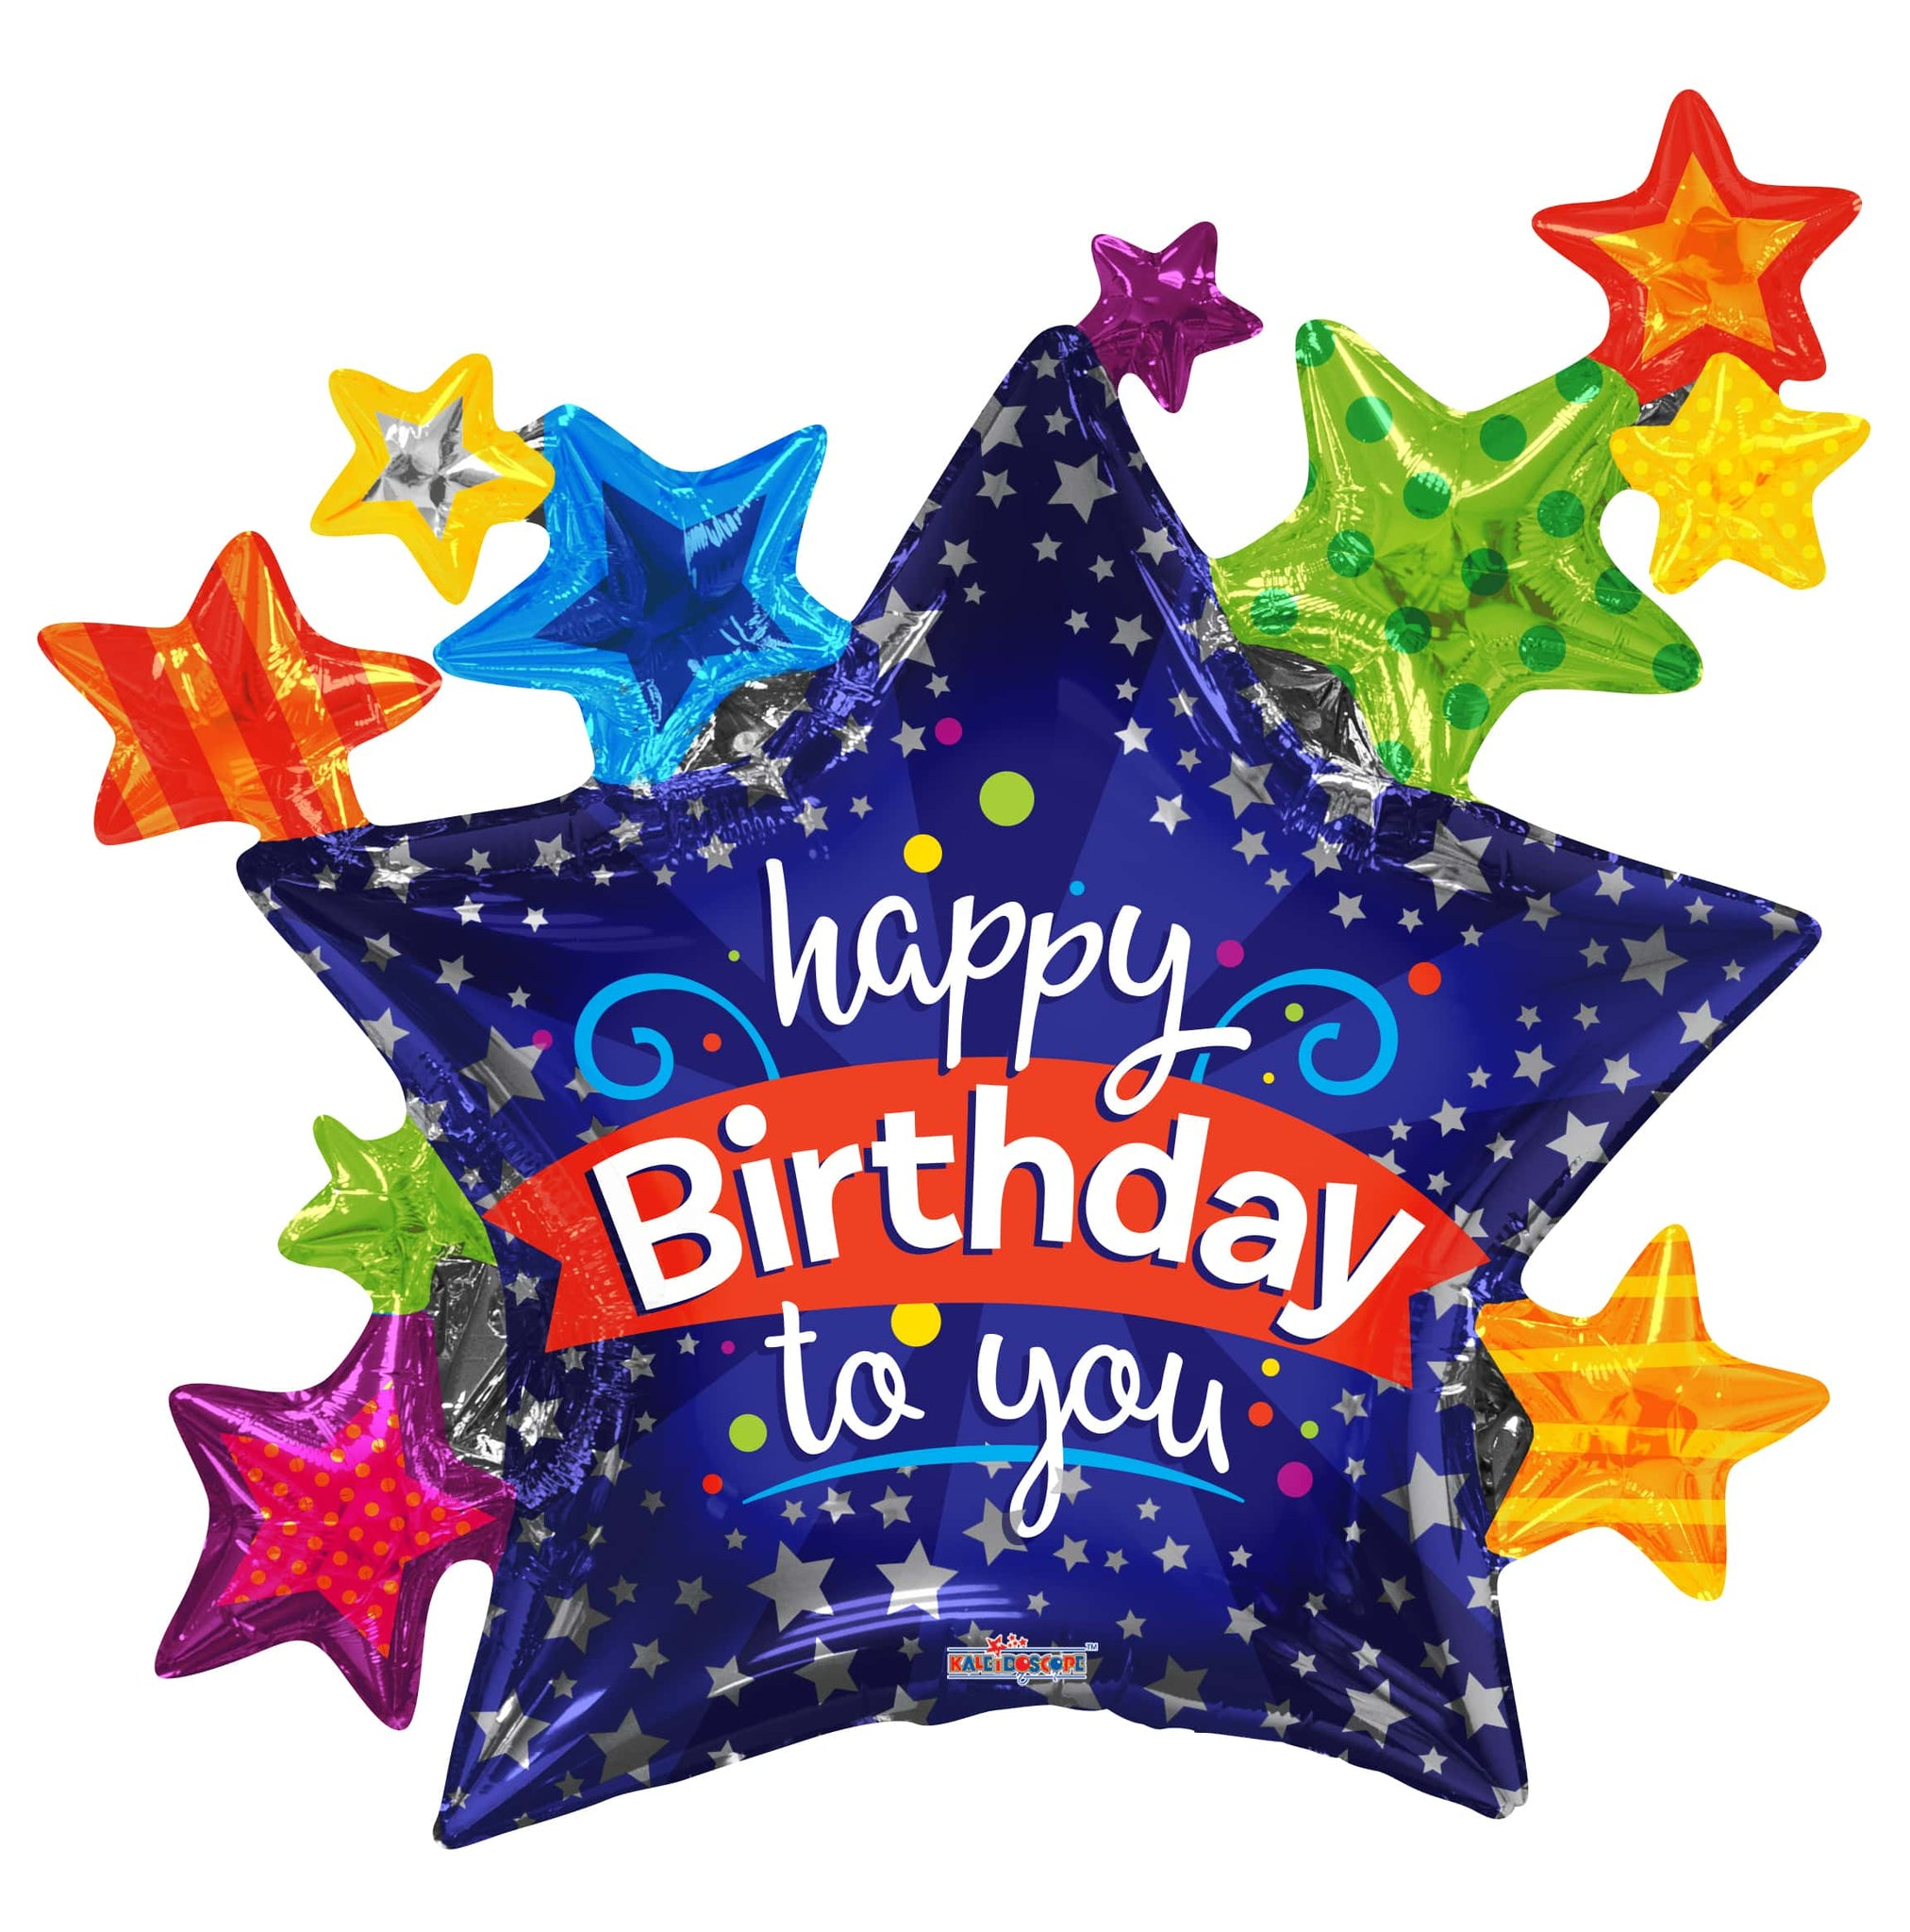 Happy Birthday to you - Multi Stars Balloon 36""